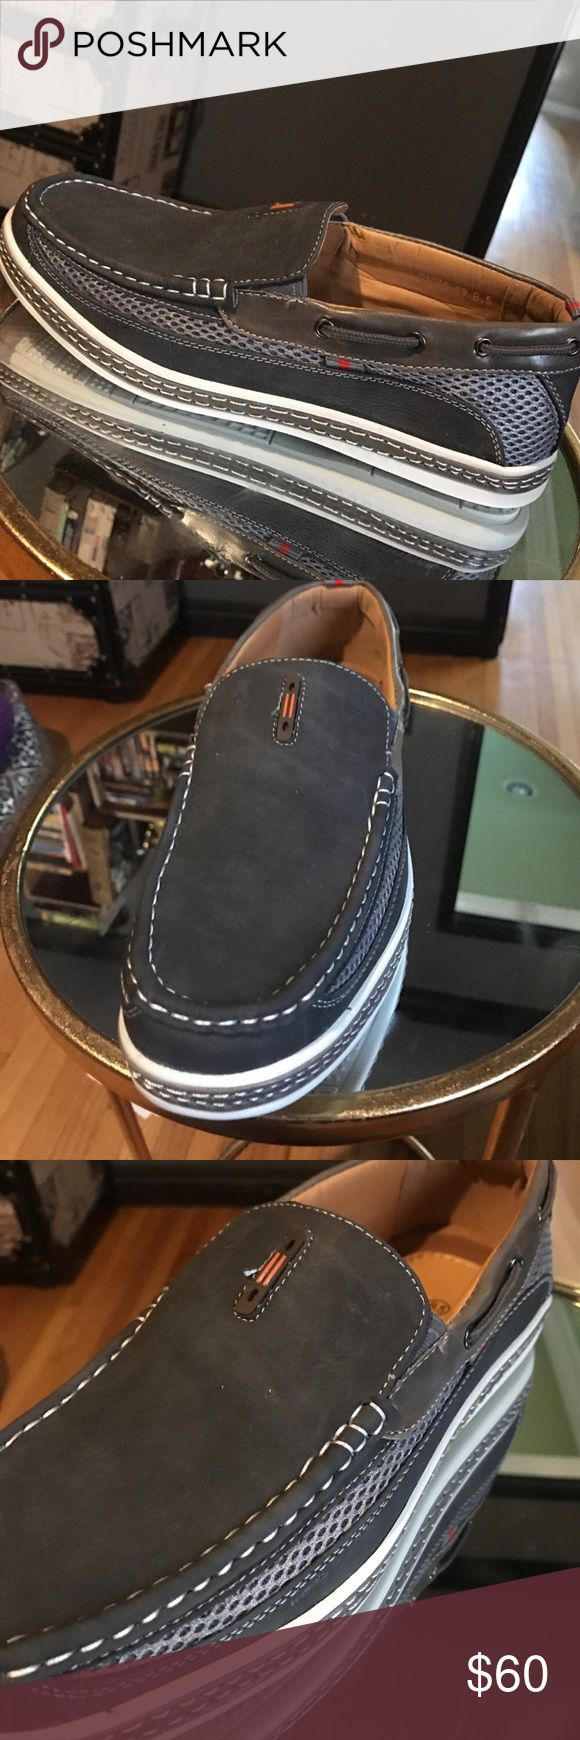 Casual men's slip on loafers Casual mesh side panel slip on loafers for men. Contrasting stitching details. Brand new never been worn. Comes with original packaging. Versatile and pairs great with jeans! (Also available in brown) frenchic Shoes Loafers & Slip-Ons